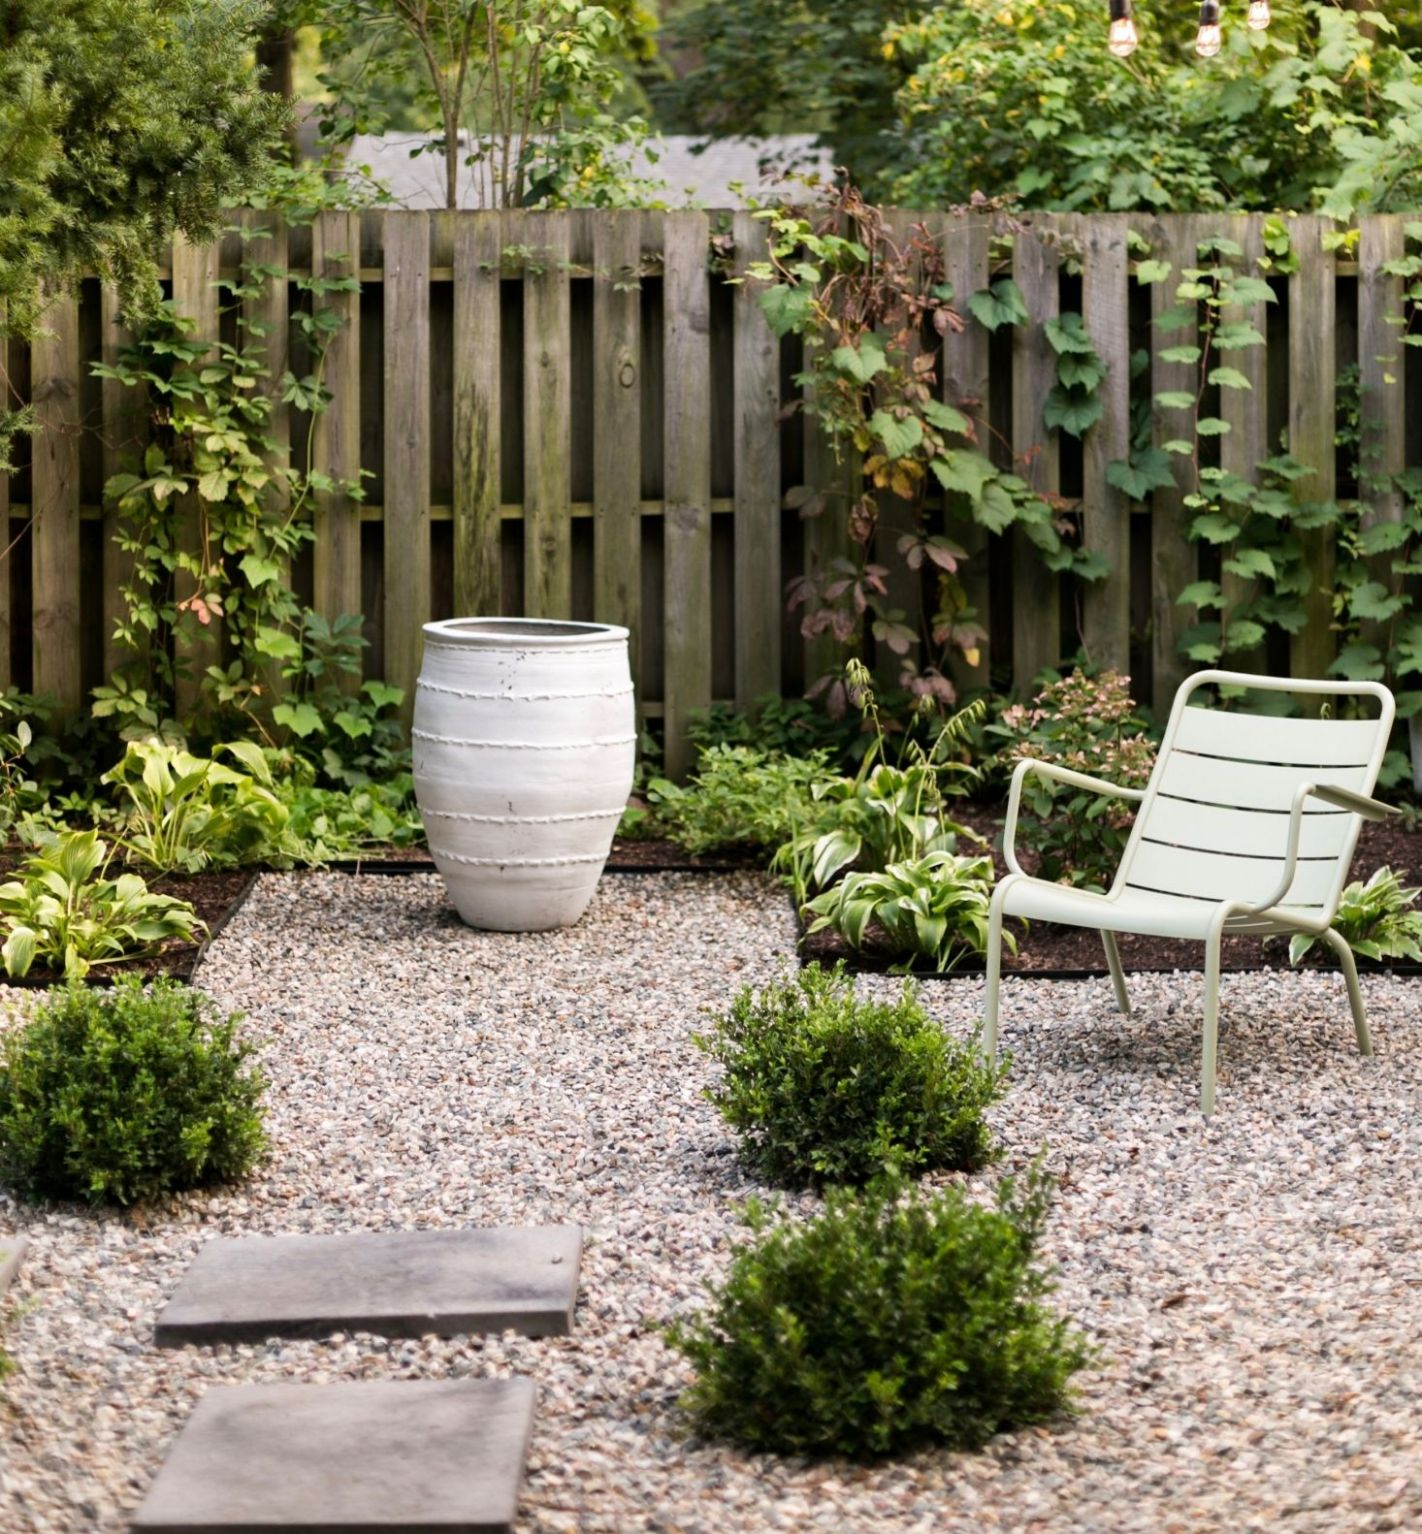 Everything You Need to Know About Gravel (With images) | Hardscape ..